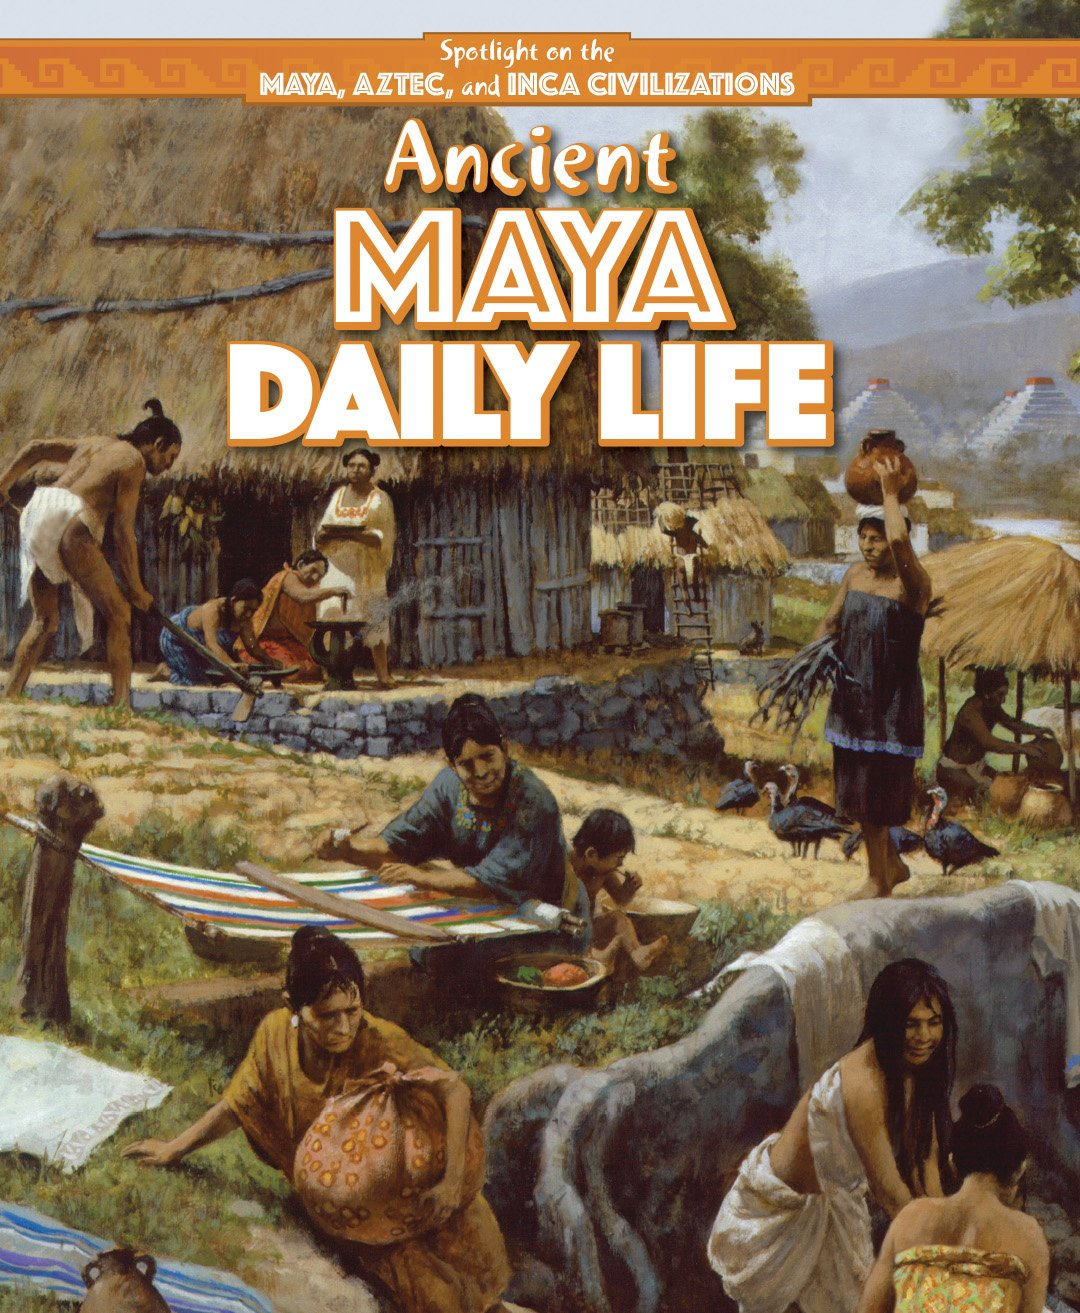 geography people and life of the ancient maya What were the physical features of the mayans a: physical features for mayan people would have occurred at different times in their life while the maya.